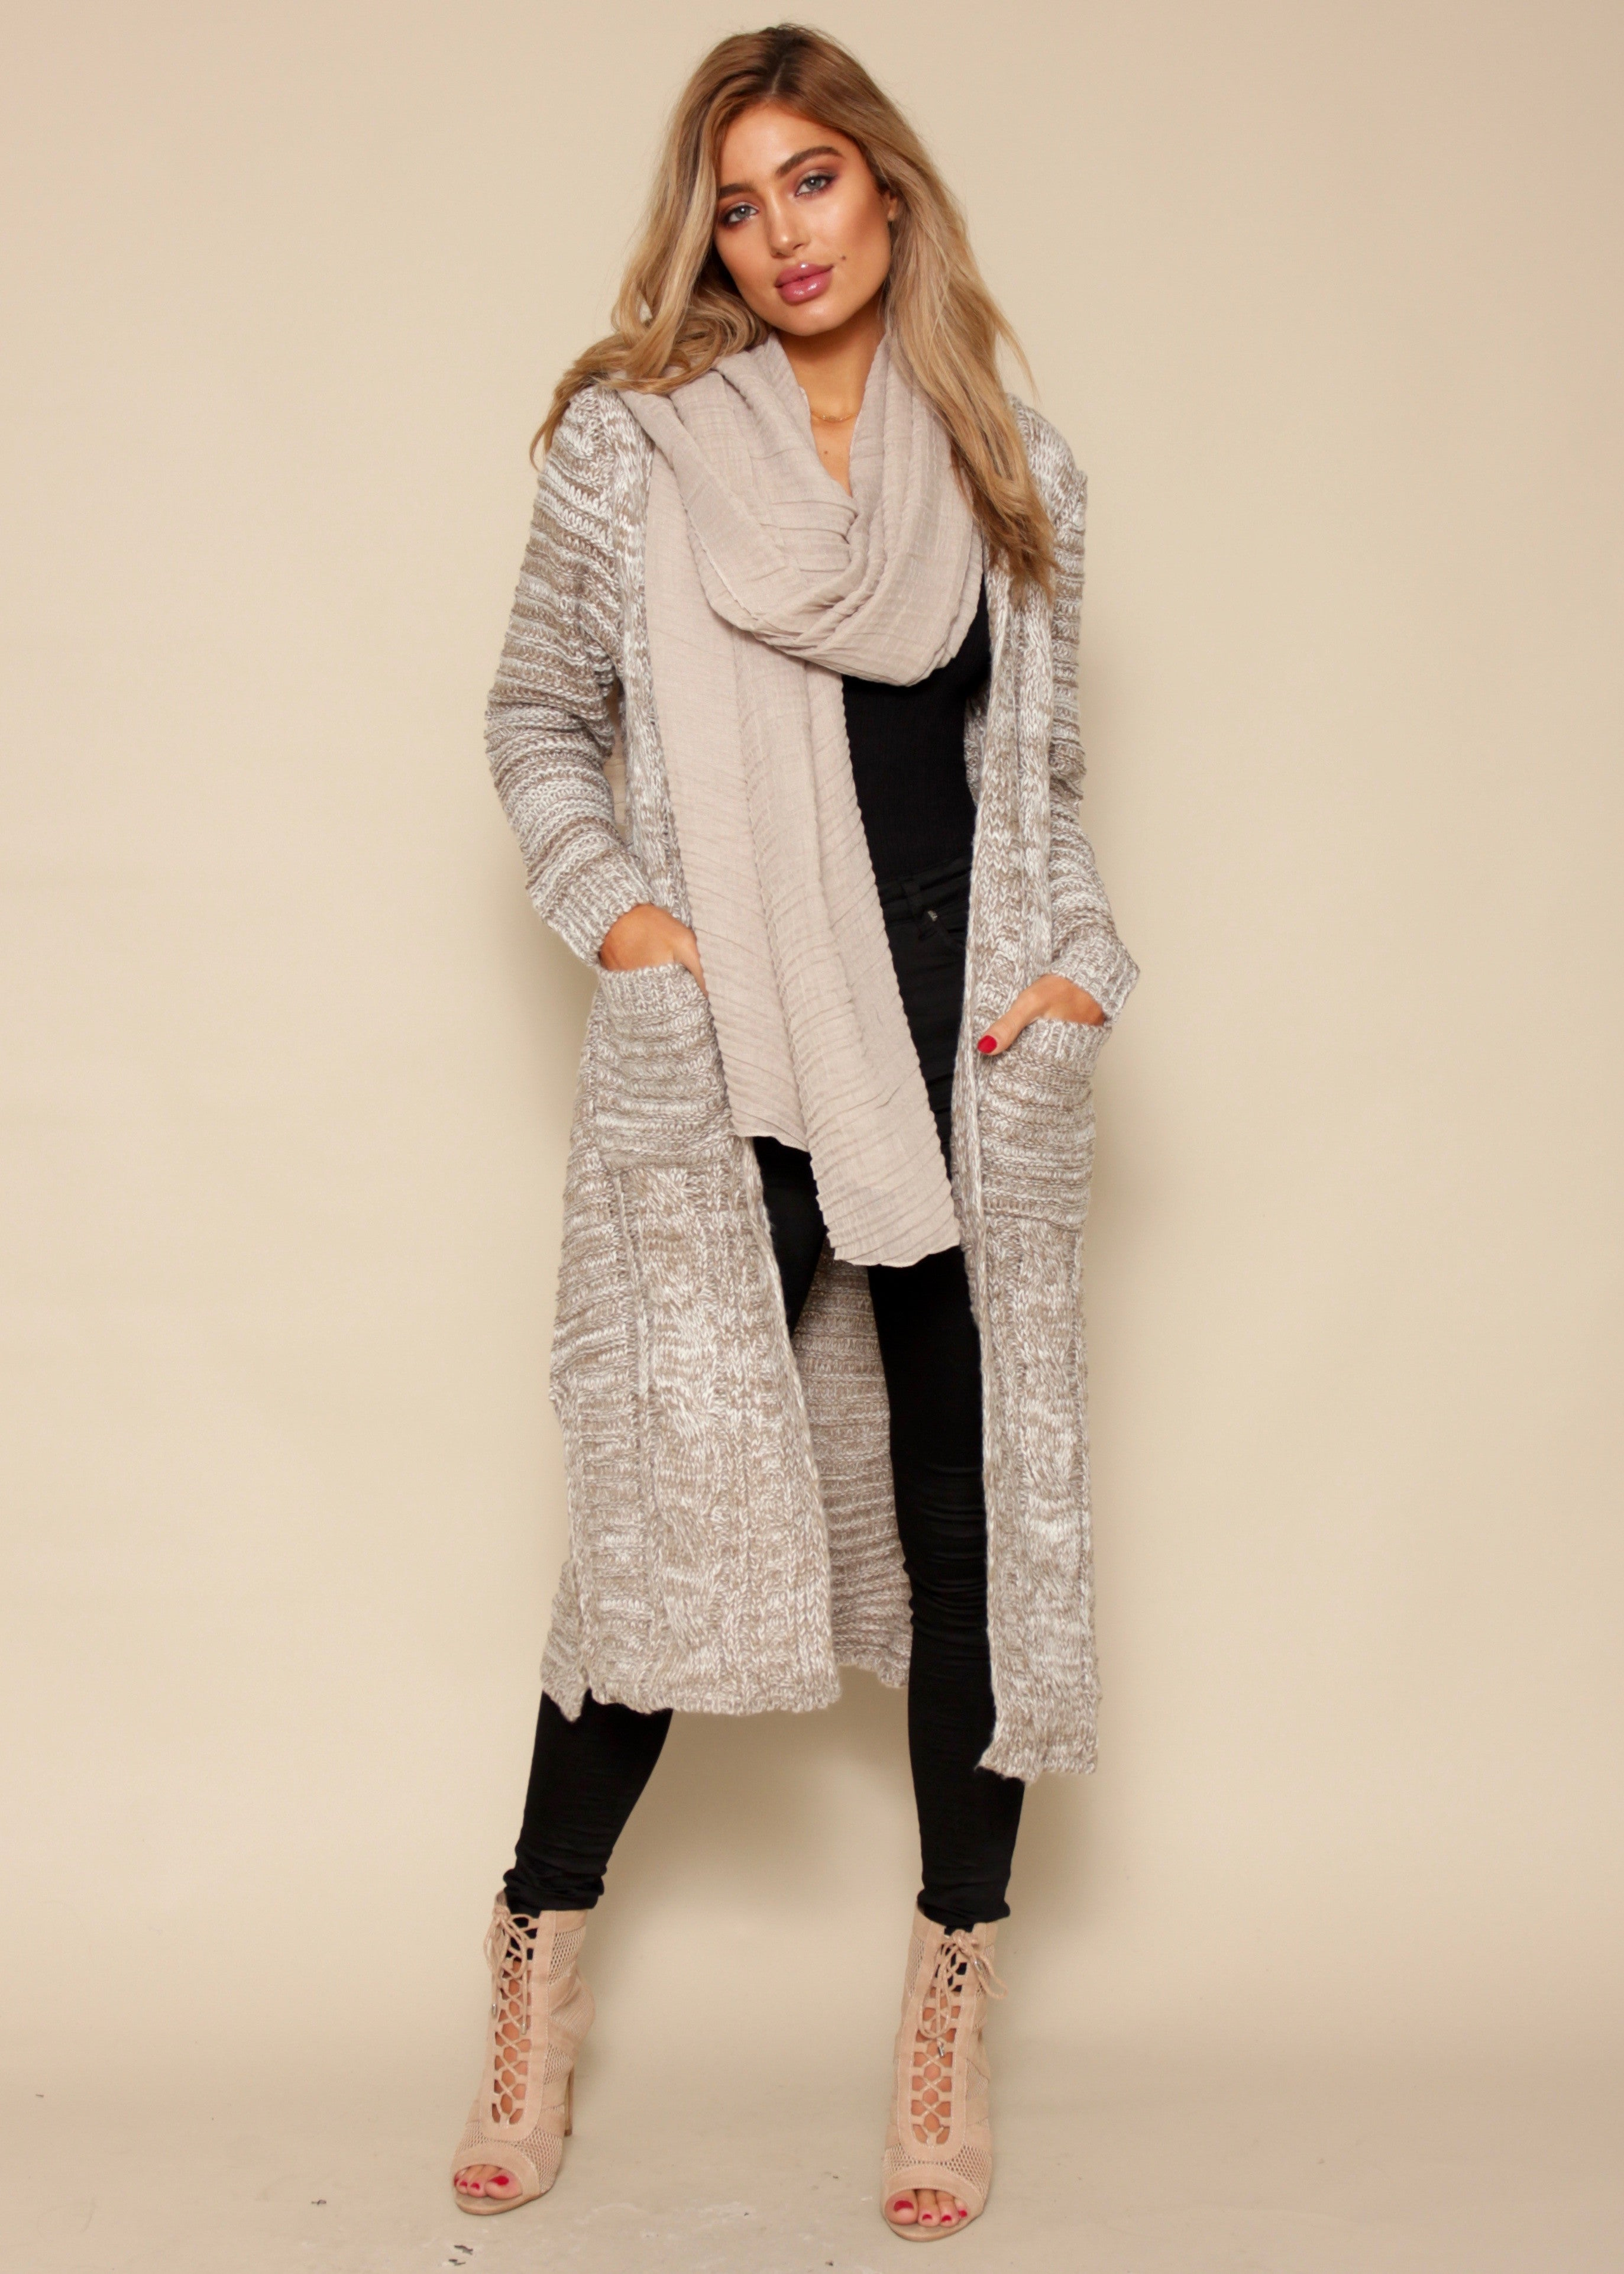 Raw Stone Knit Cardigan - Grey/Brown